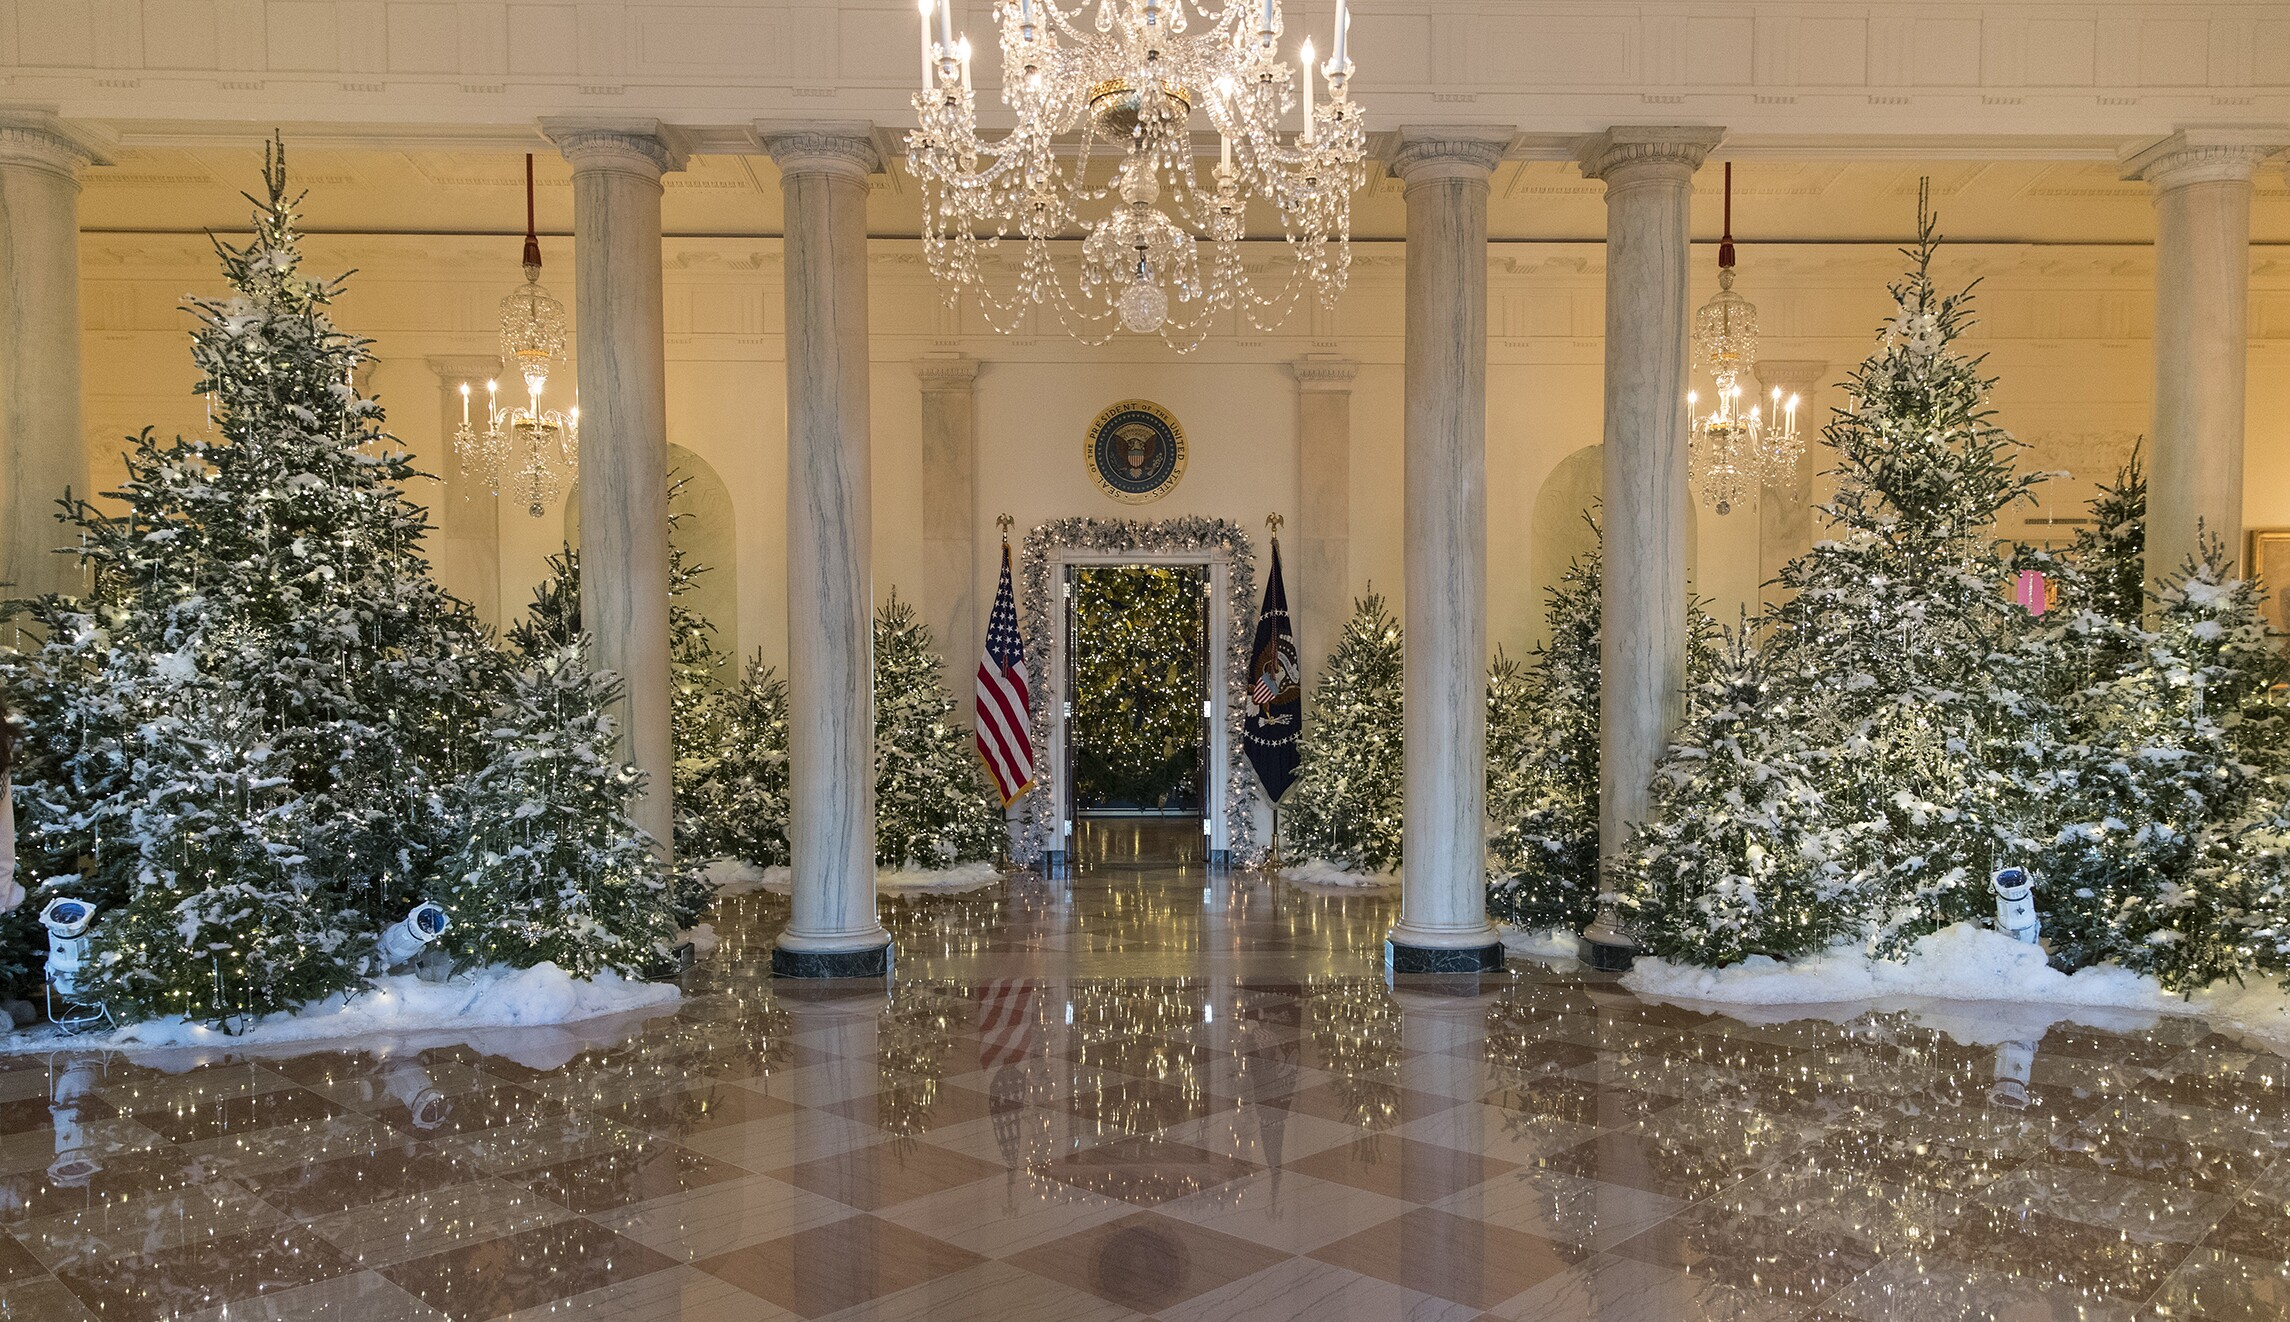 112717 giaritelli holiday decorations tradition pic - Melania Trump Christmas Decorations